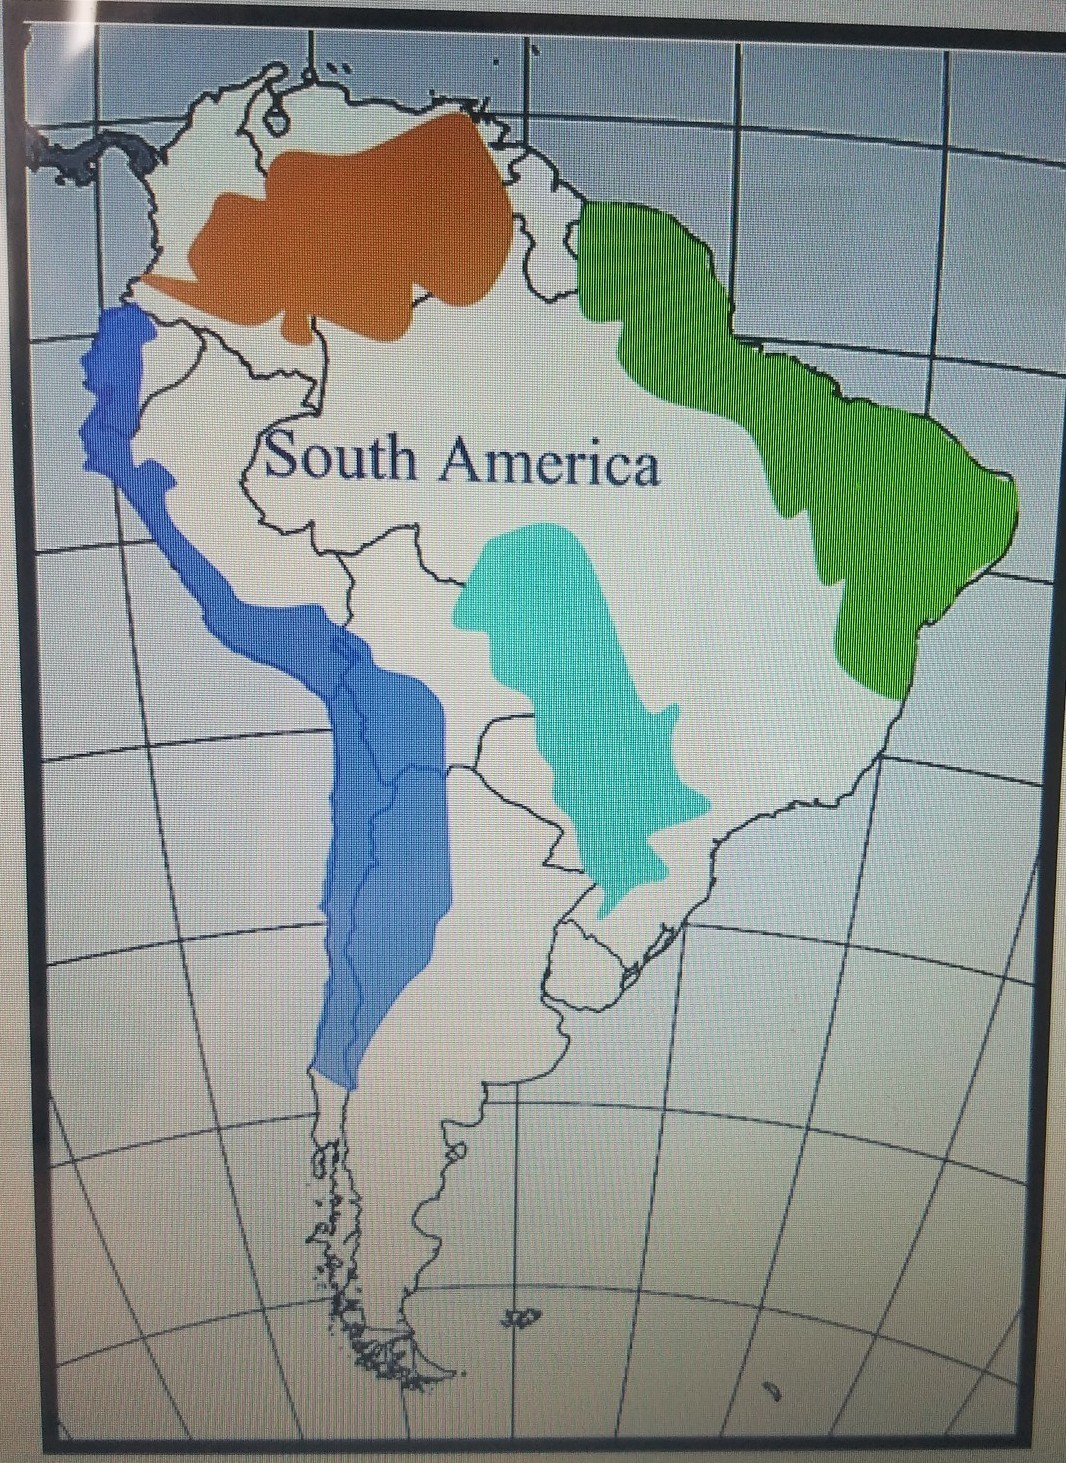 Which colored area on the map shows the approximate range of ... on map of italian empire, map of celtic empire, map of mayan empire, map of alexander the greats empire, map of danish empire, map of siege of vienna, map of south america, map of the moche empire, map of north german confederation, map of cuzco, map of toltec empire, map of chavin empire, map of mesopotamia, aztec empire, map of rapa iti, map of umayyad caliphate empire, map of mali empire, map of khmer empire, map of tenochtitlan, map of hindu empire,